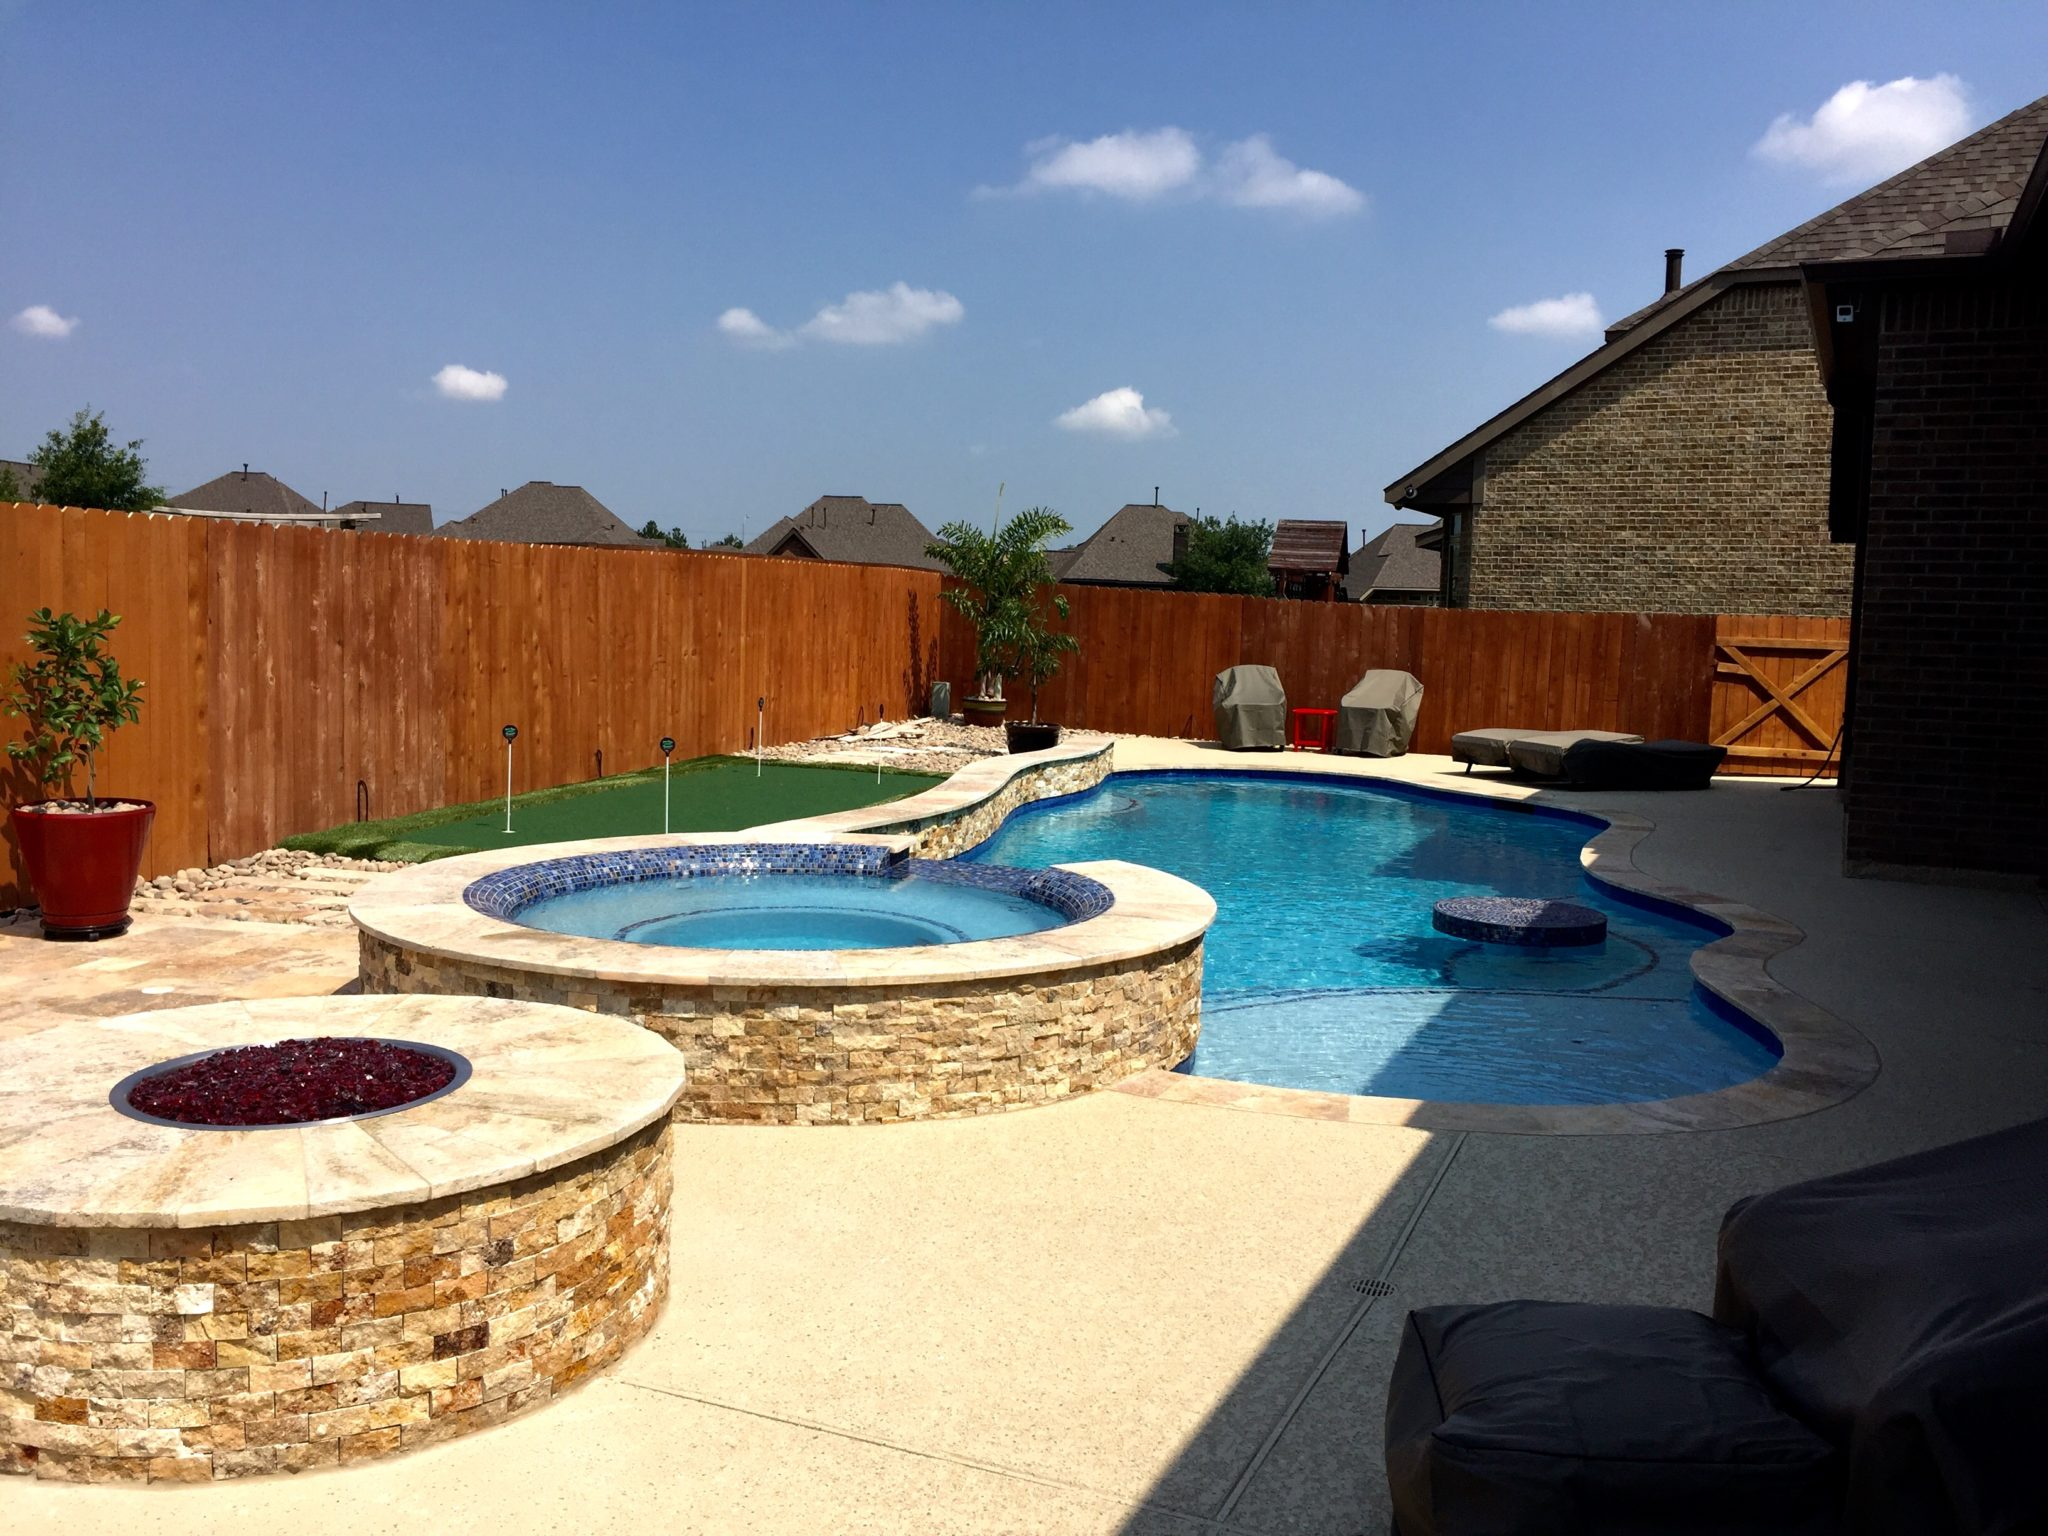 Pool Service Costs Dallas